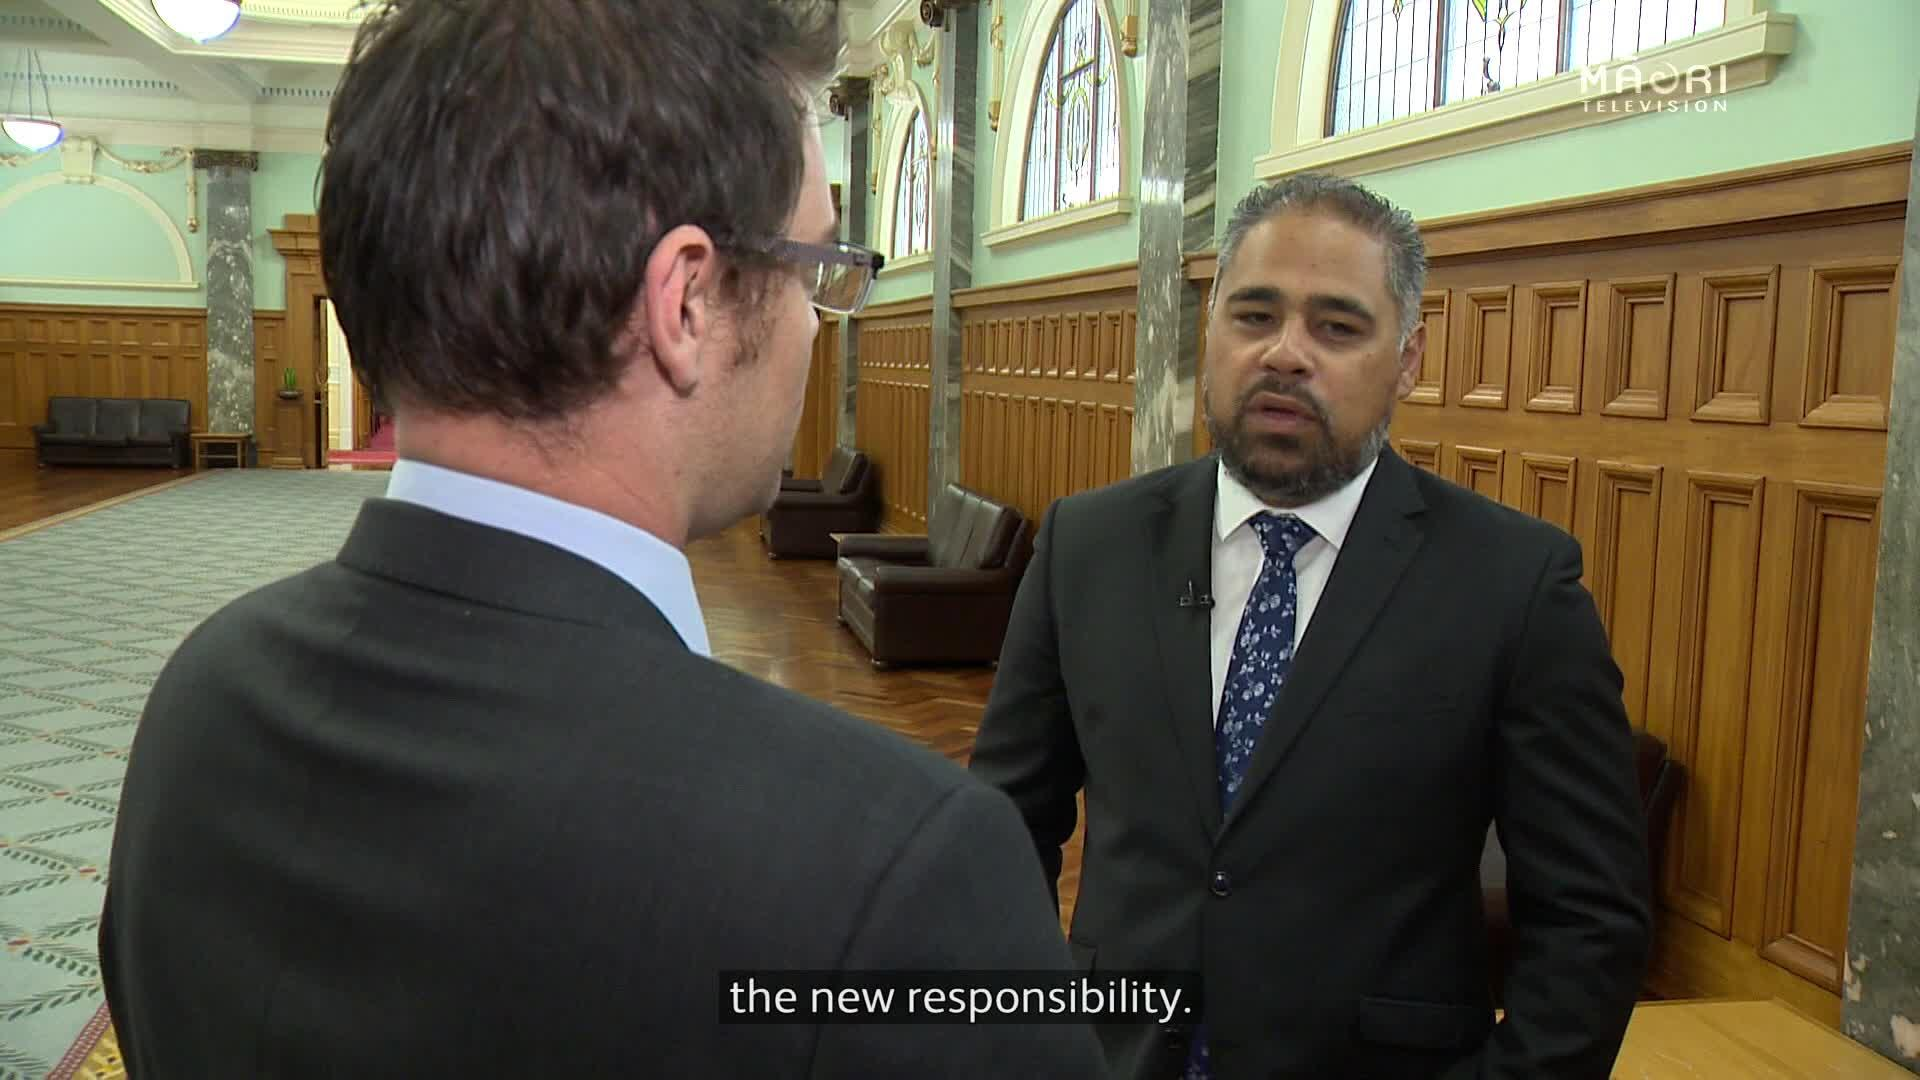 Video for Henare PM's speaker for Rātana